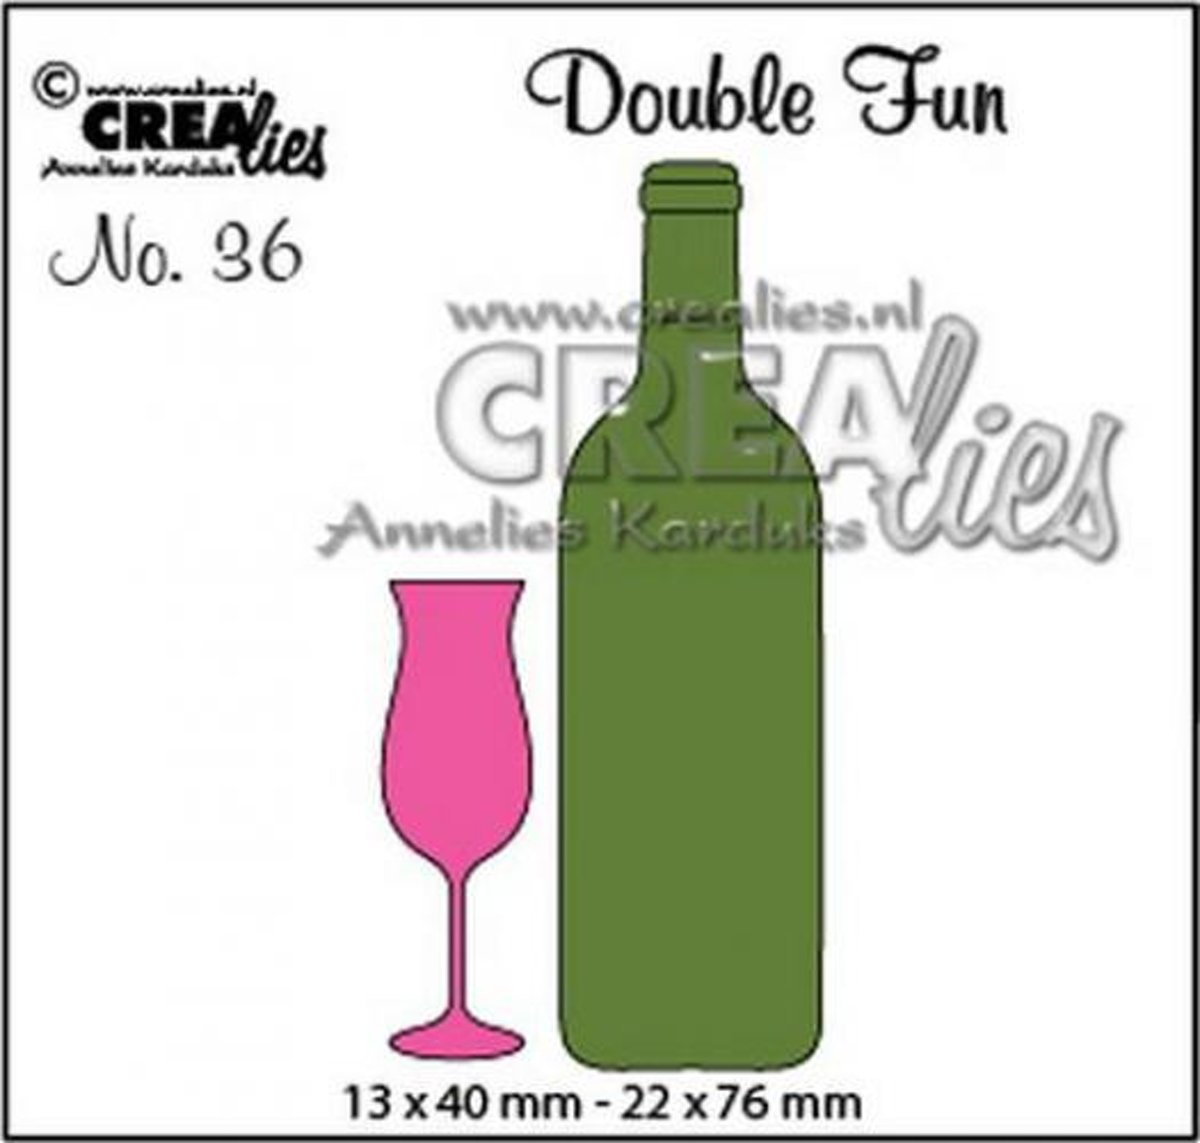 Double Fun no. 36 champagneglas en wijnfles klein CLDF36 13x40 - 22x76mm